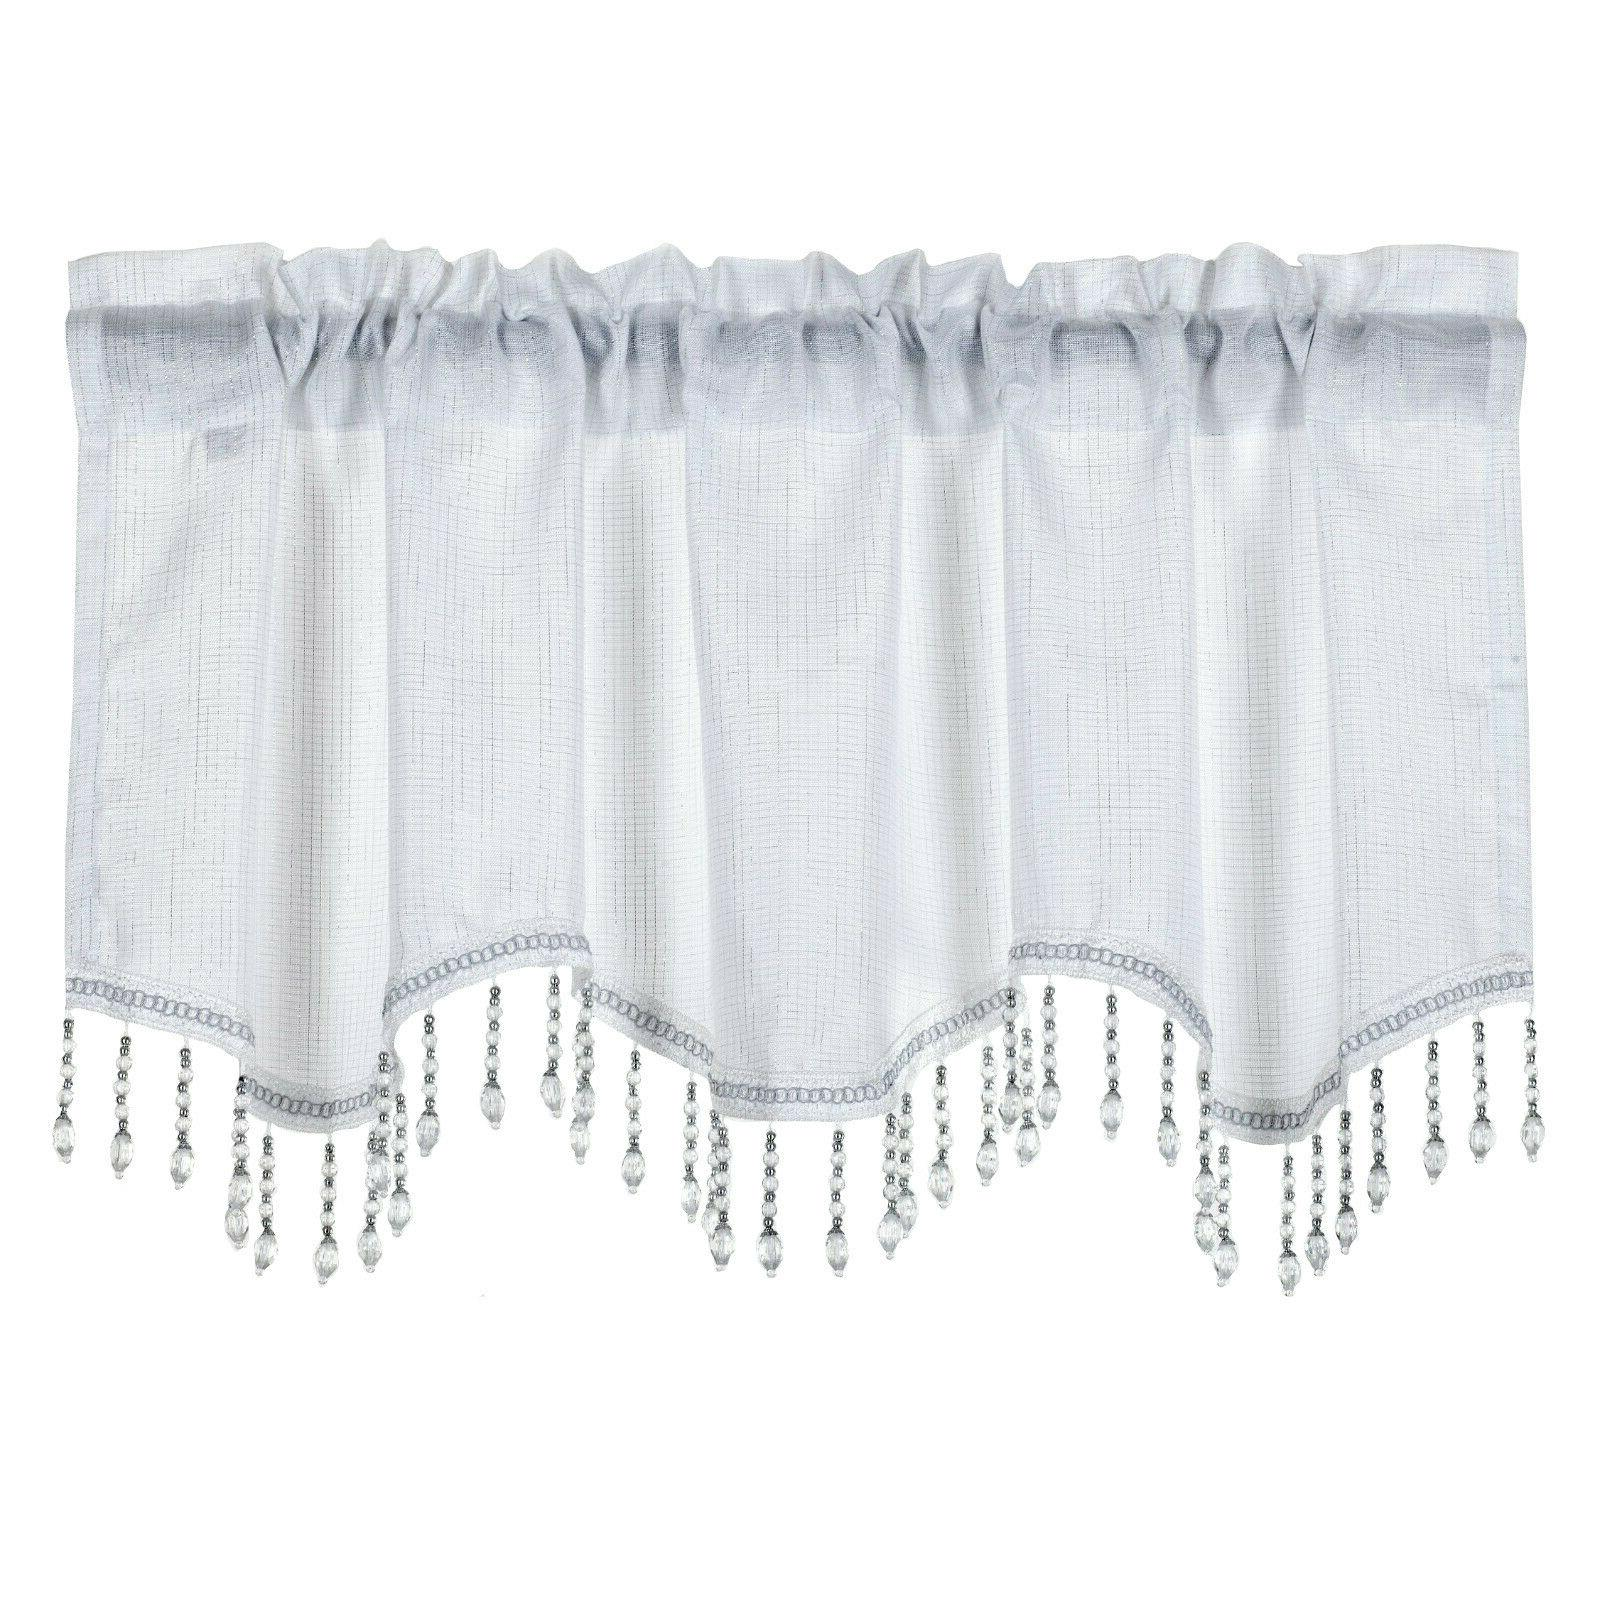 Kate Scalloped Window Valance -